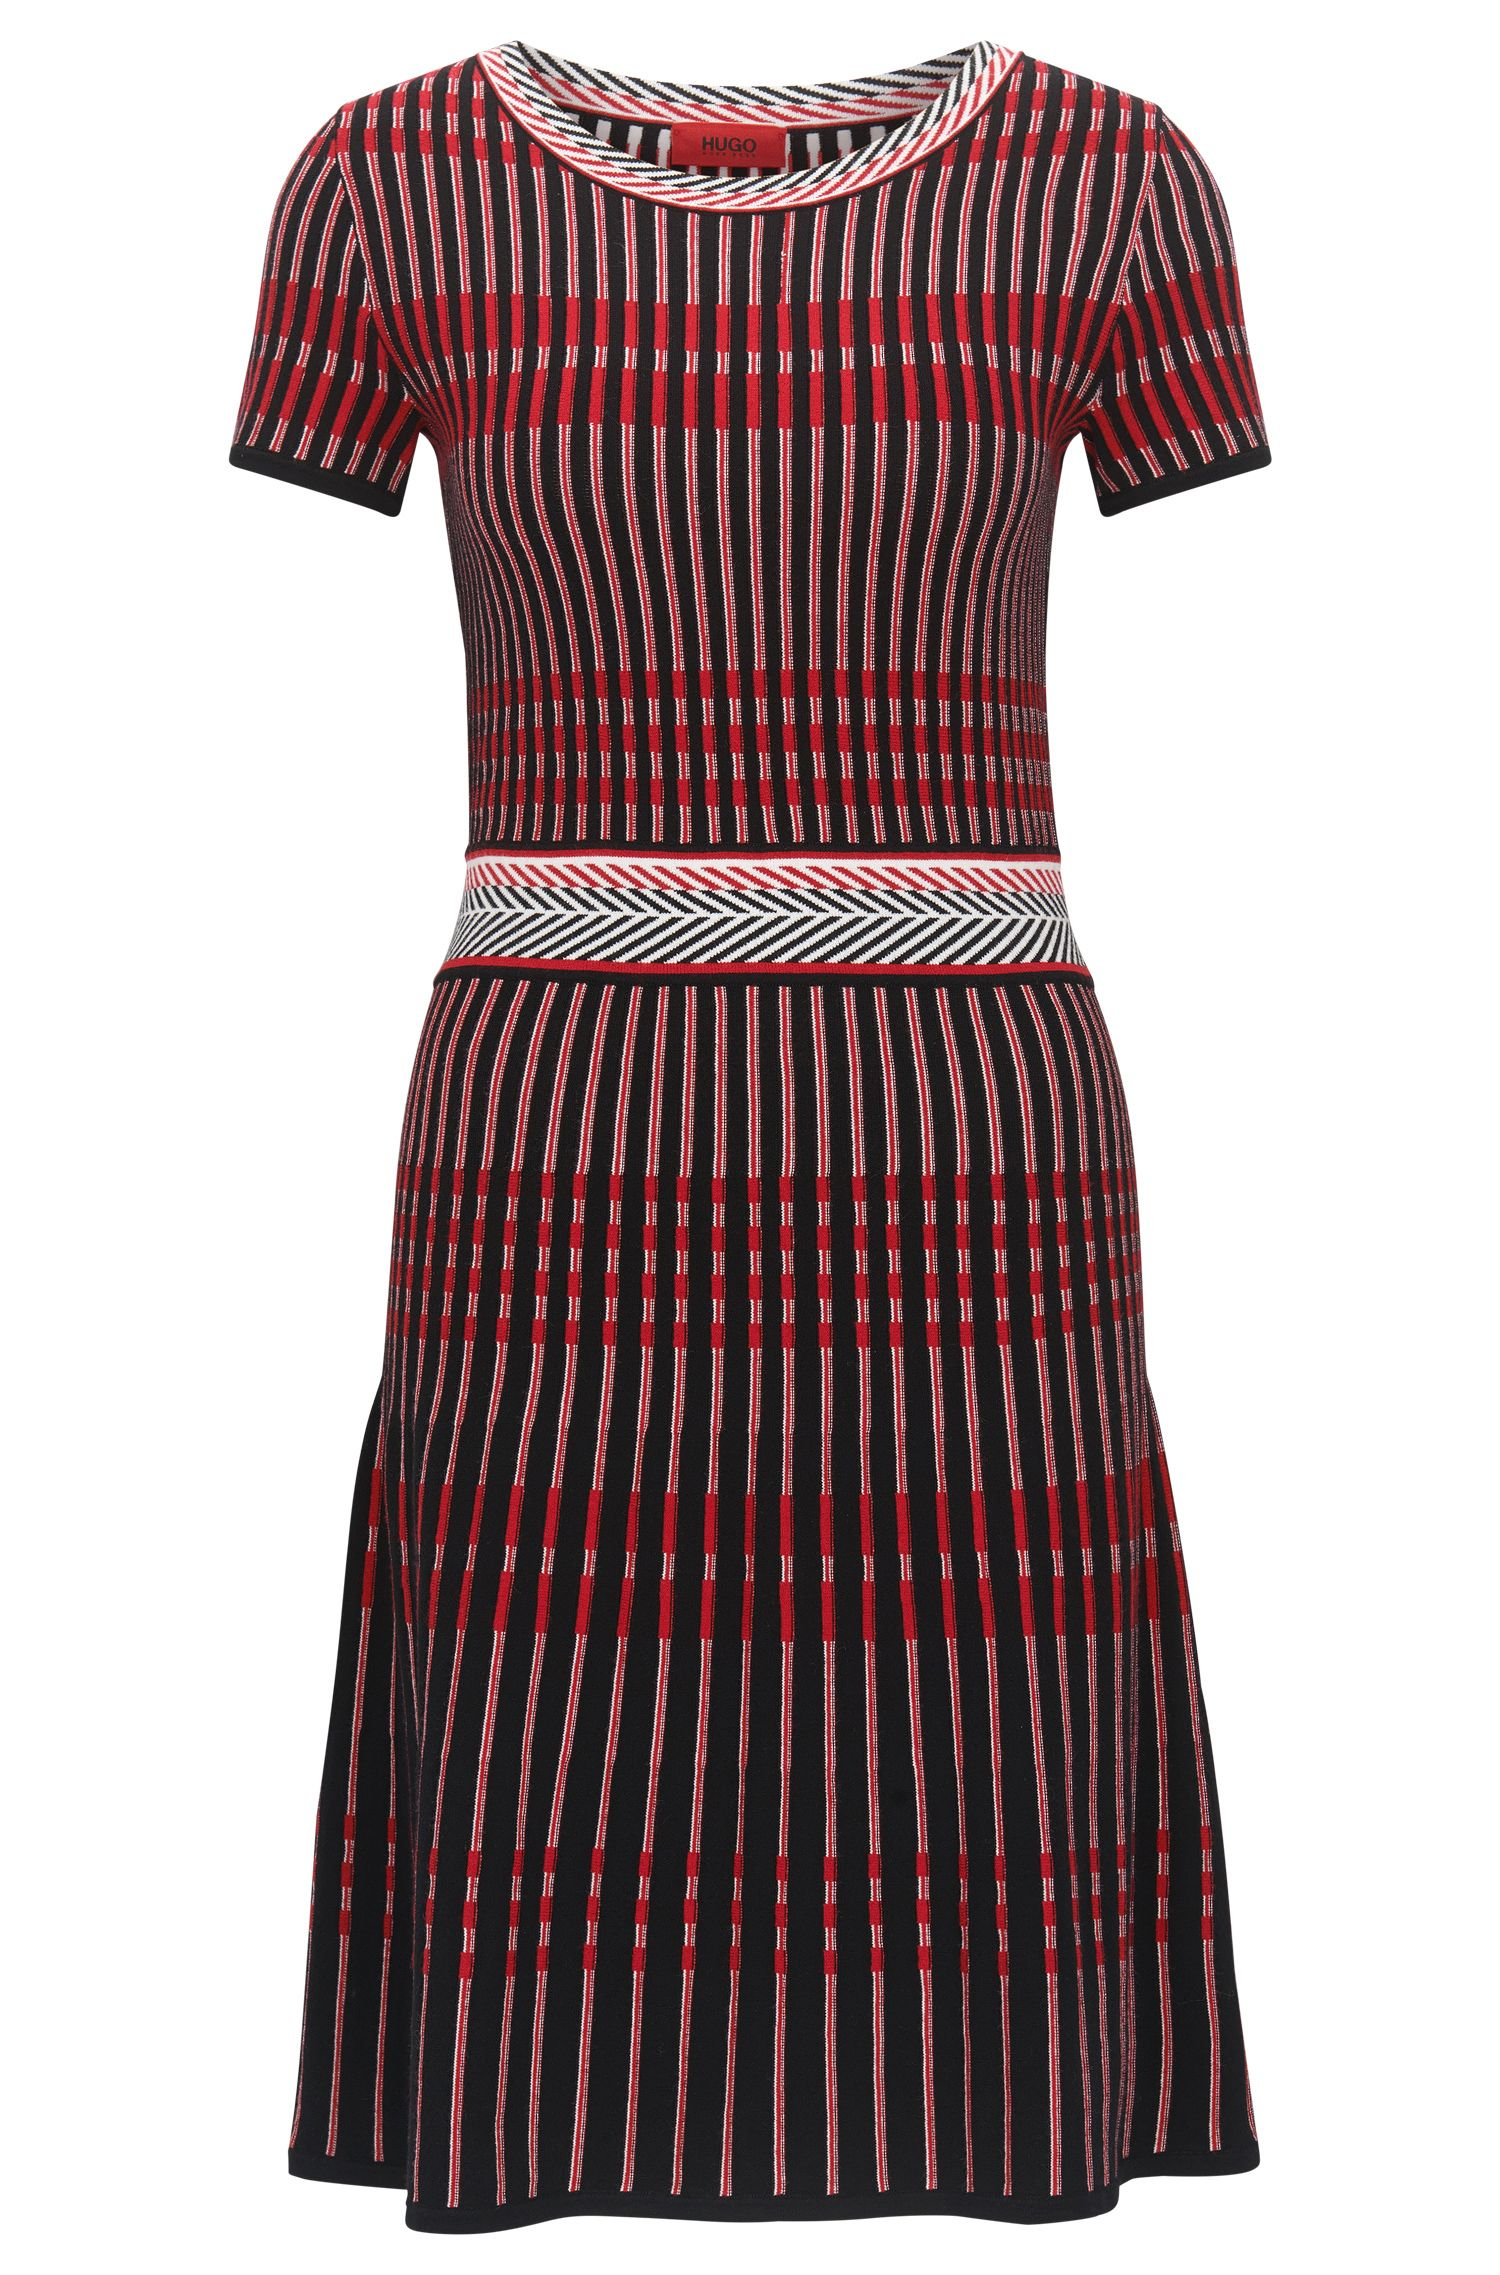 Slim-fit dress in knitted jacquard